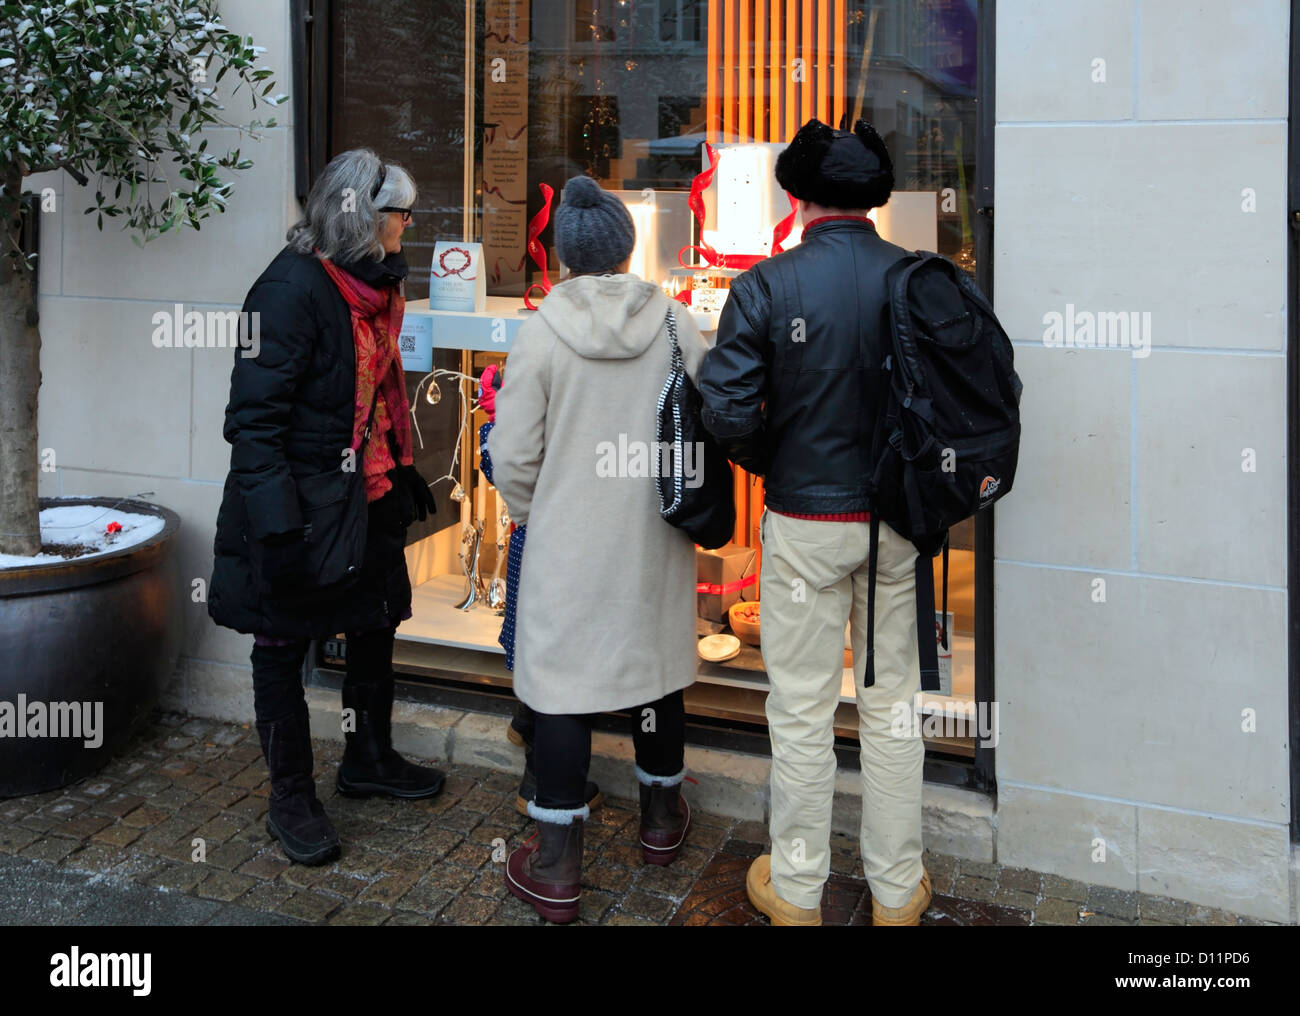 Window shopping at the Georg Jensen silversmith life style shop's Christmas display on pedestrian street Strøget, - Stock Image